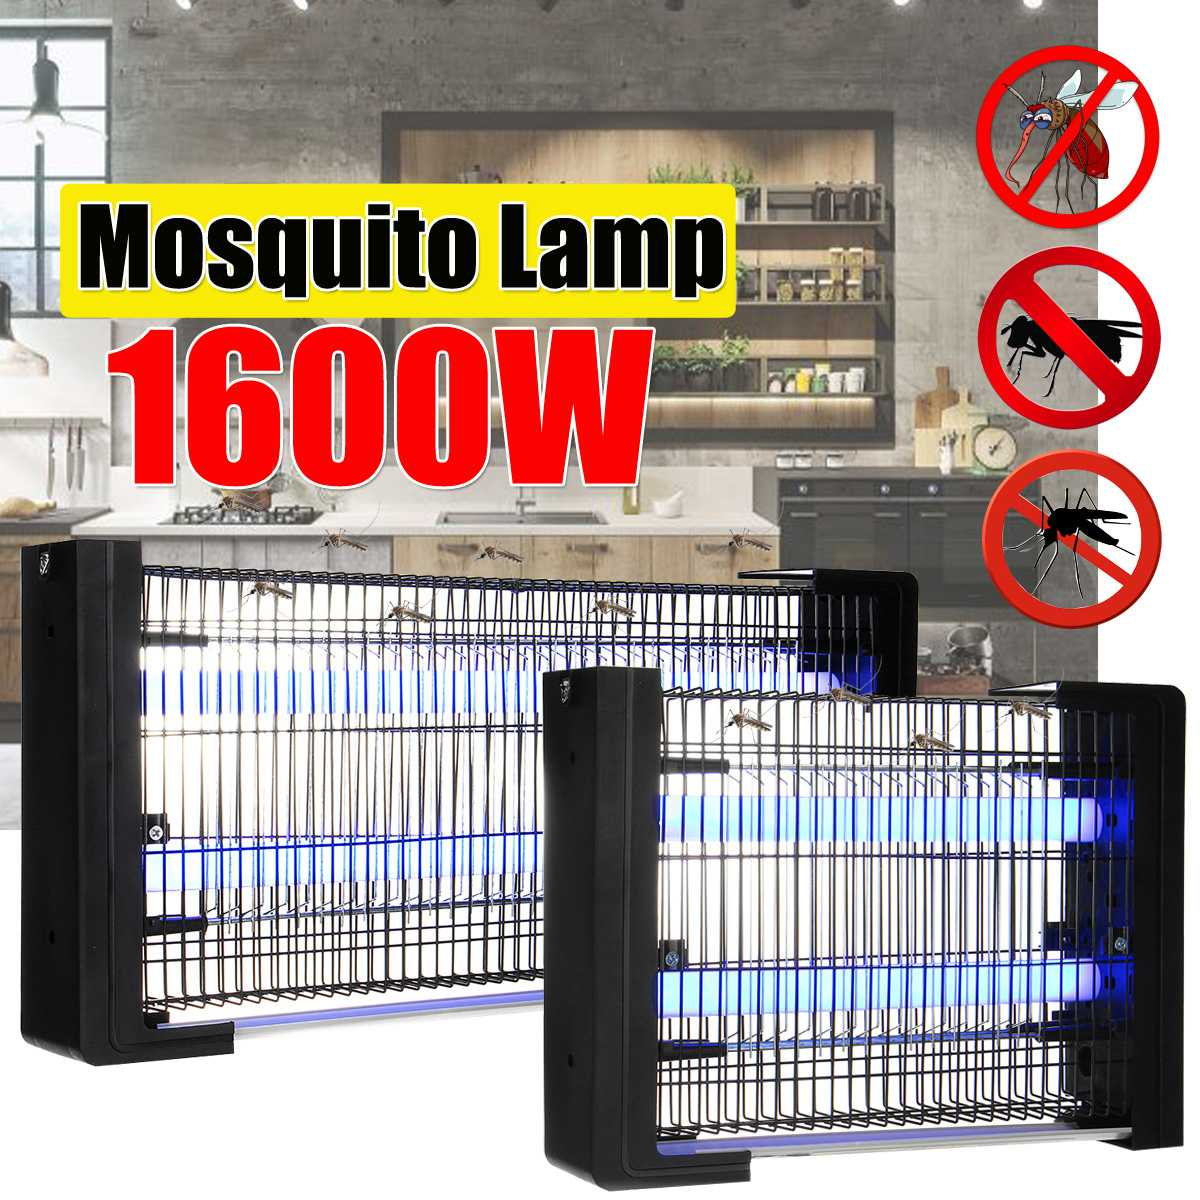 3W/6W 220V Electric Shock Mosquito Killer Lamp LED Light Insect Killer Energy Saving Anti Mosquito Lamp Bug Fly Zapper Repellent